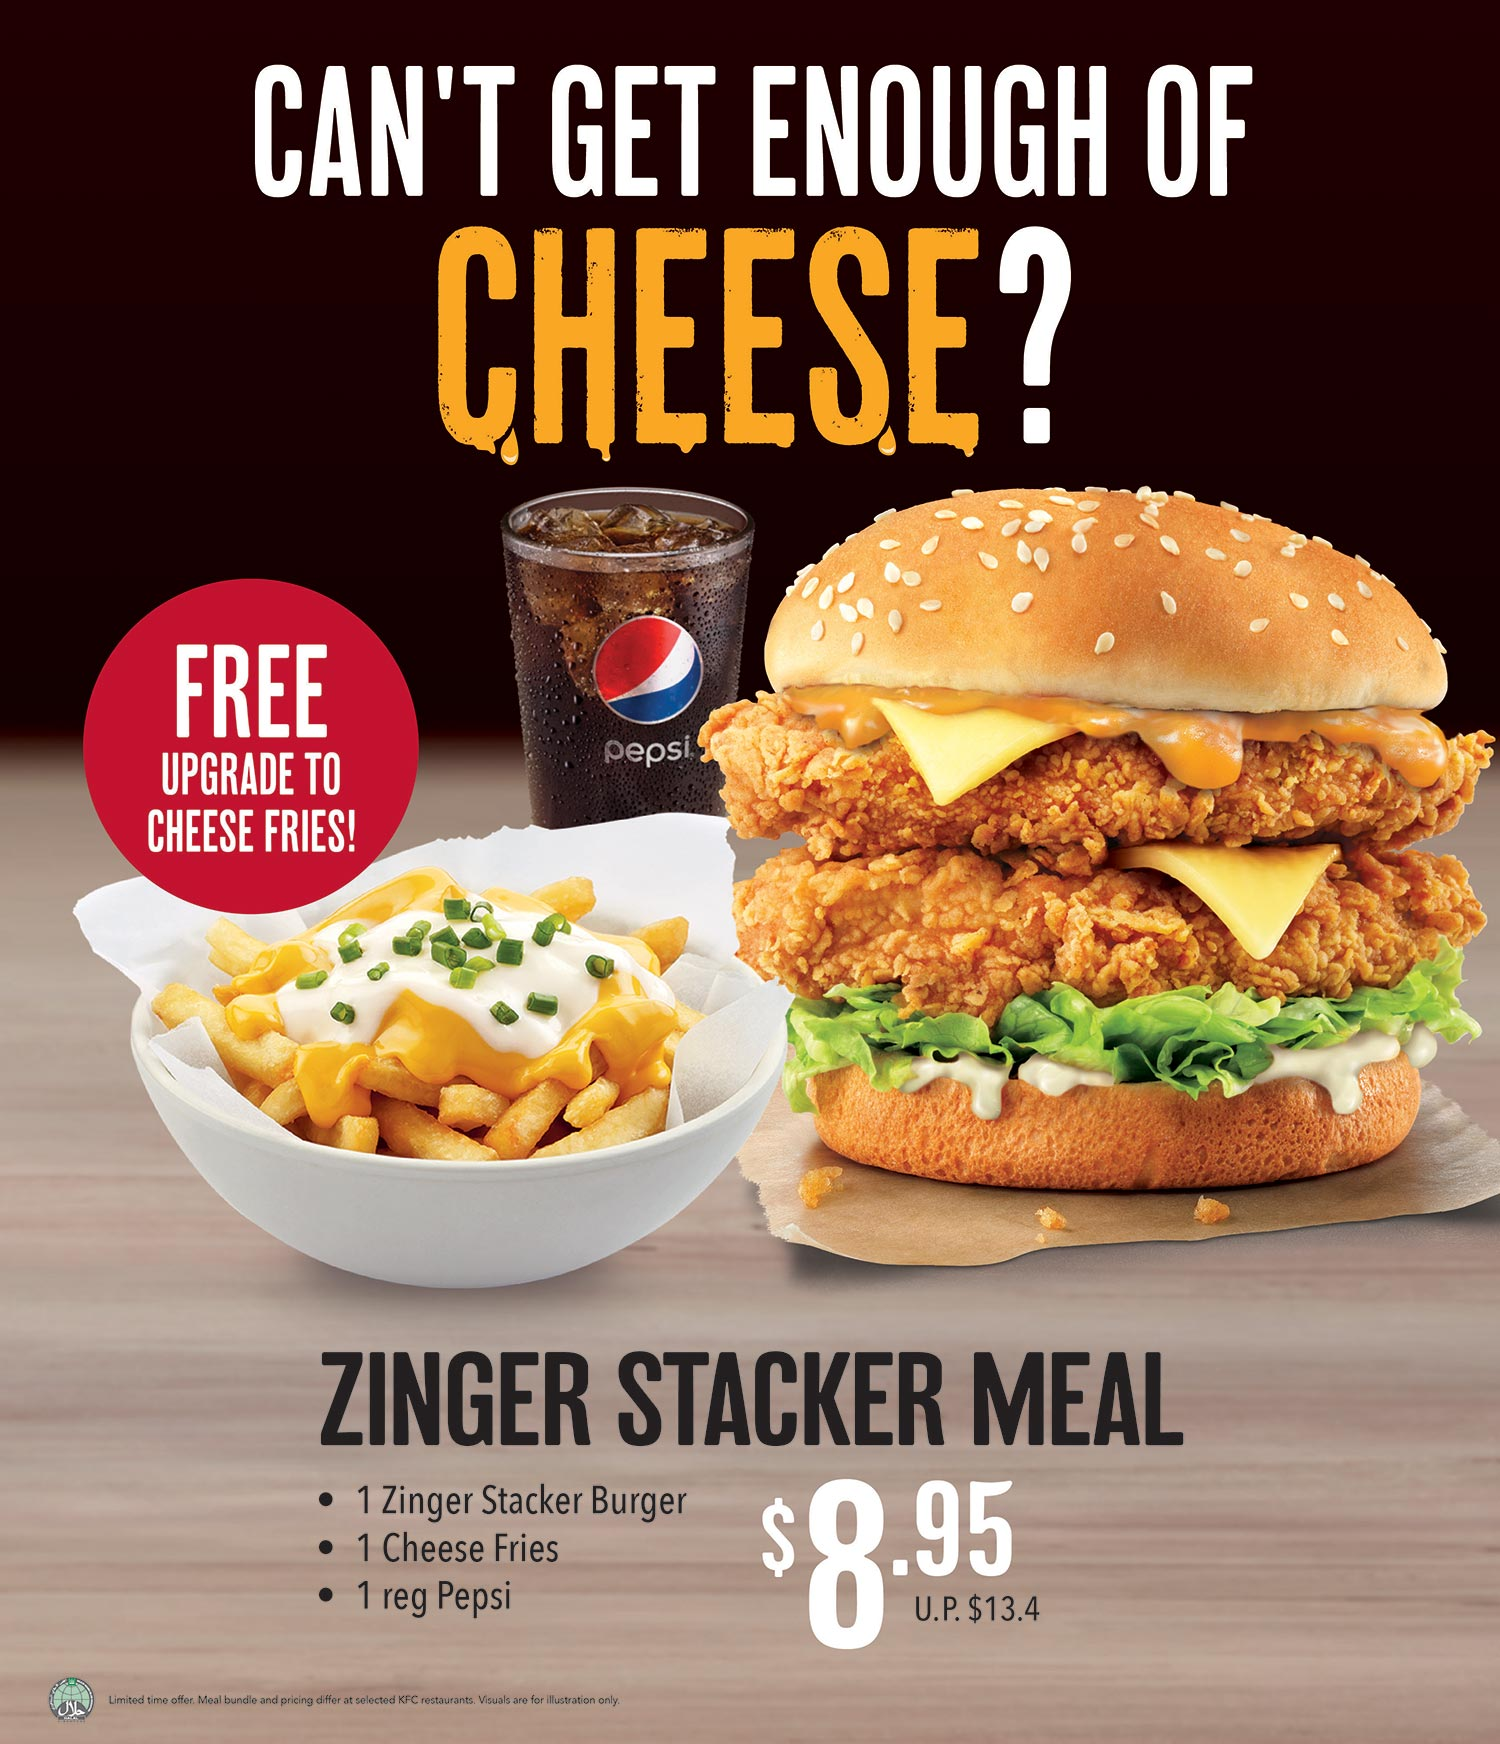 Get Cheesier with the Cheesy Zinger Stacker Meal!